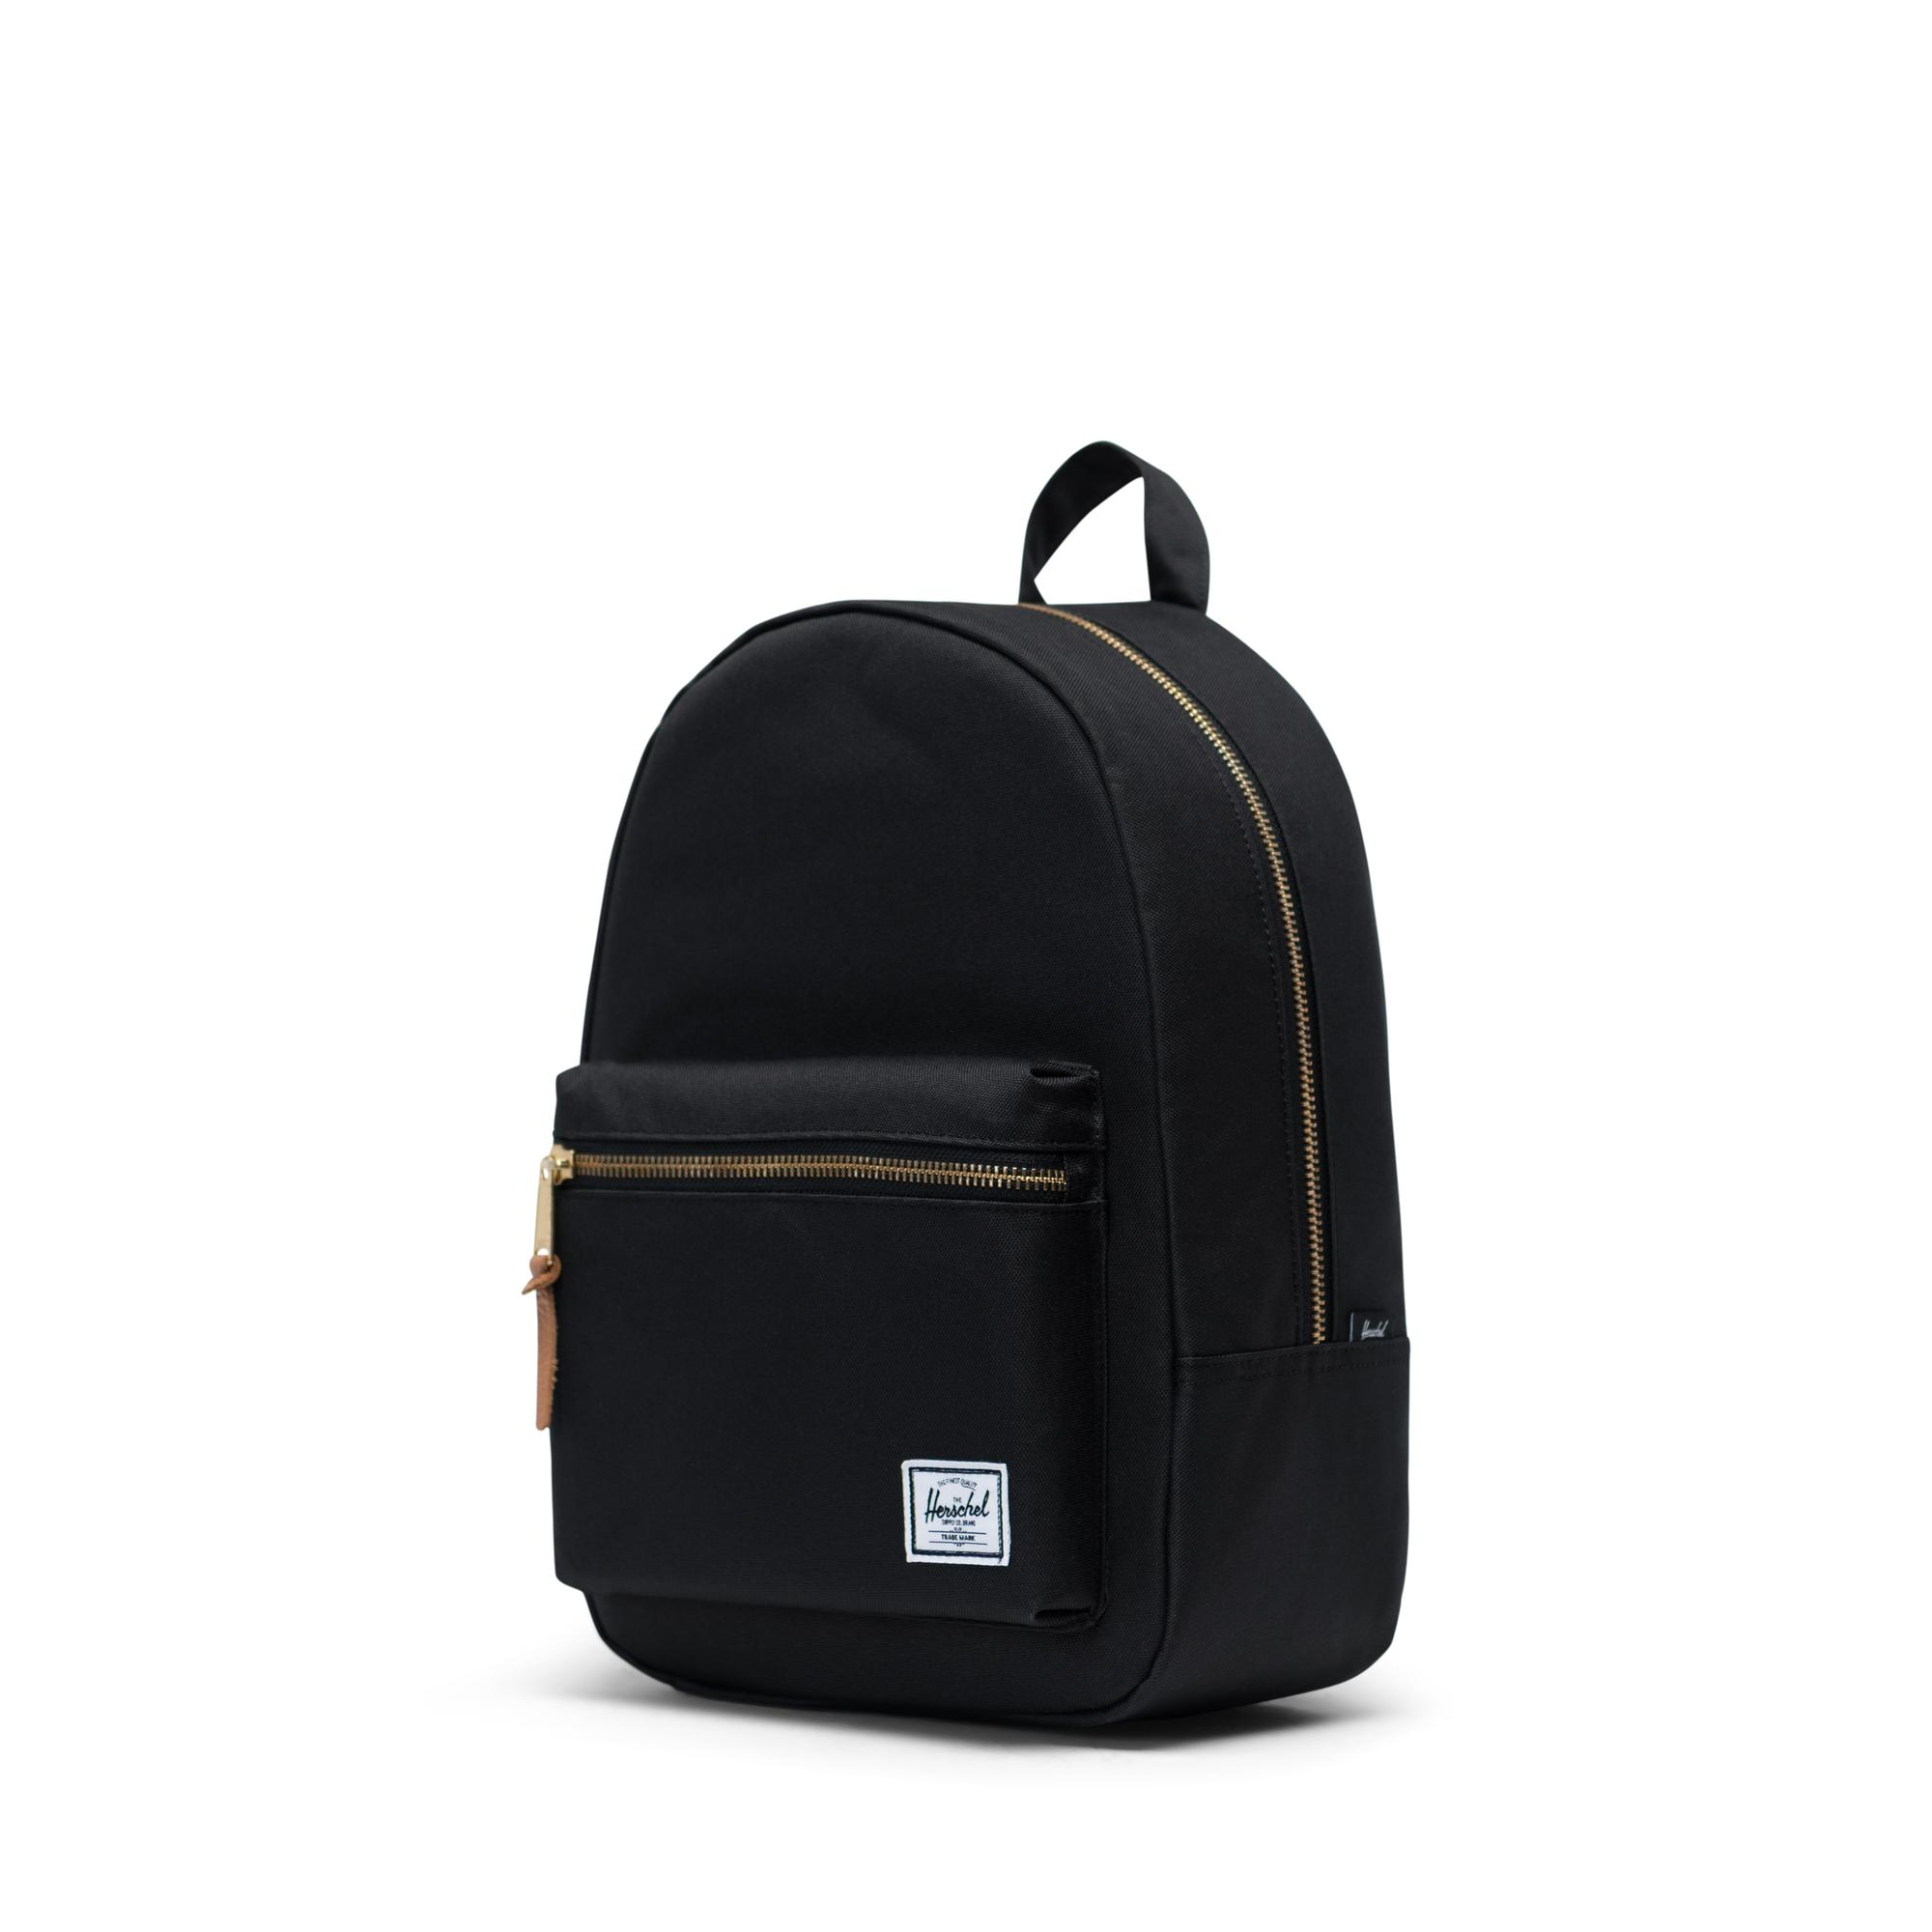 8e0db4670dad Buy Herschel Backpack Canada- Fenix Toulouse Handball